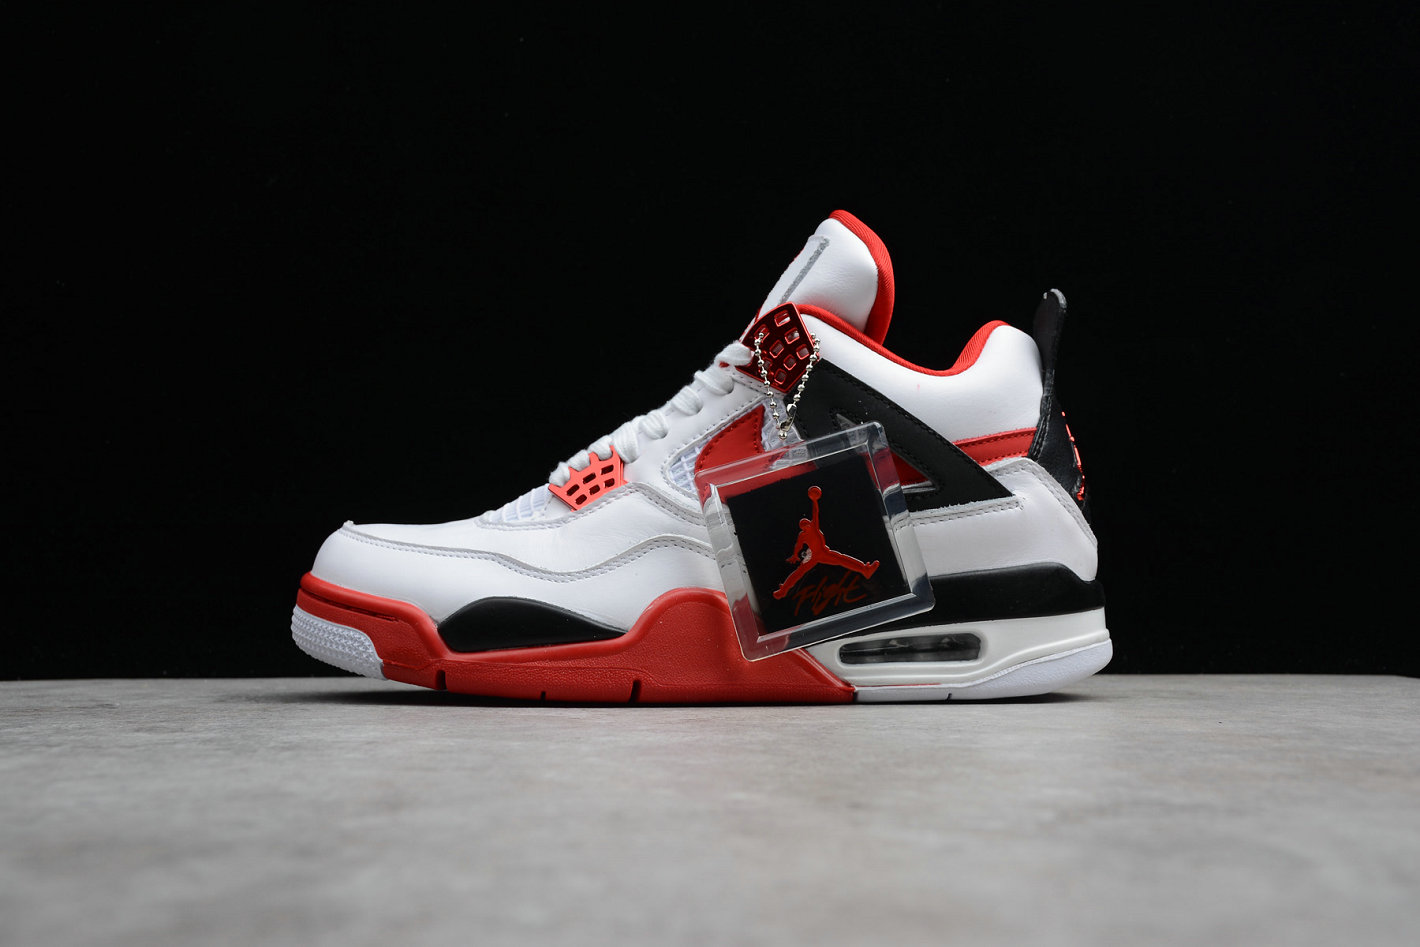 Cheap Wholesale Nike Air Jordan 4 Retro Fire Red 836011-107 Han Yubai Black Campus Red Noir Rouge- www.wholesaleflyknit.com